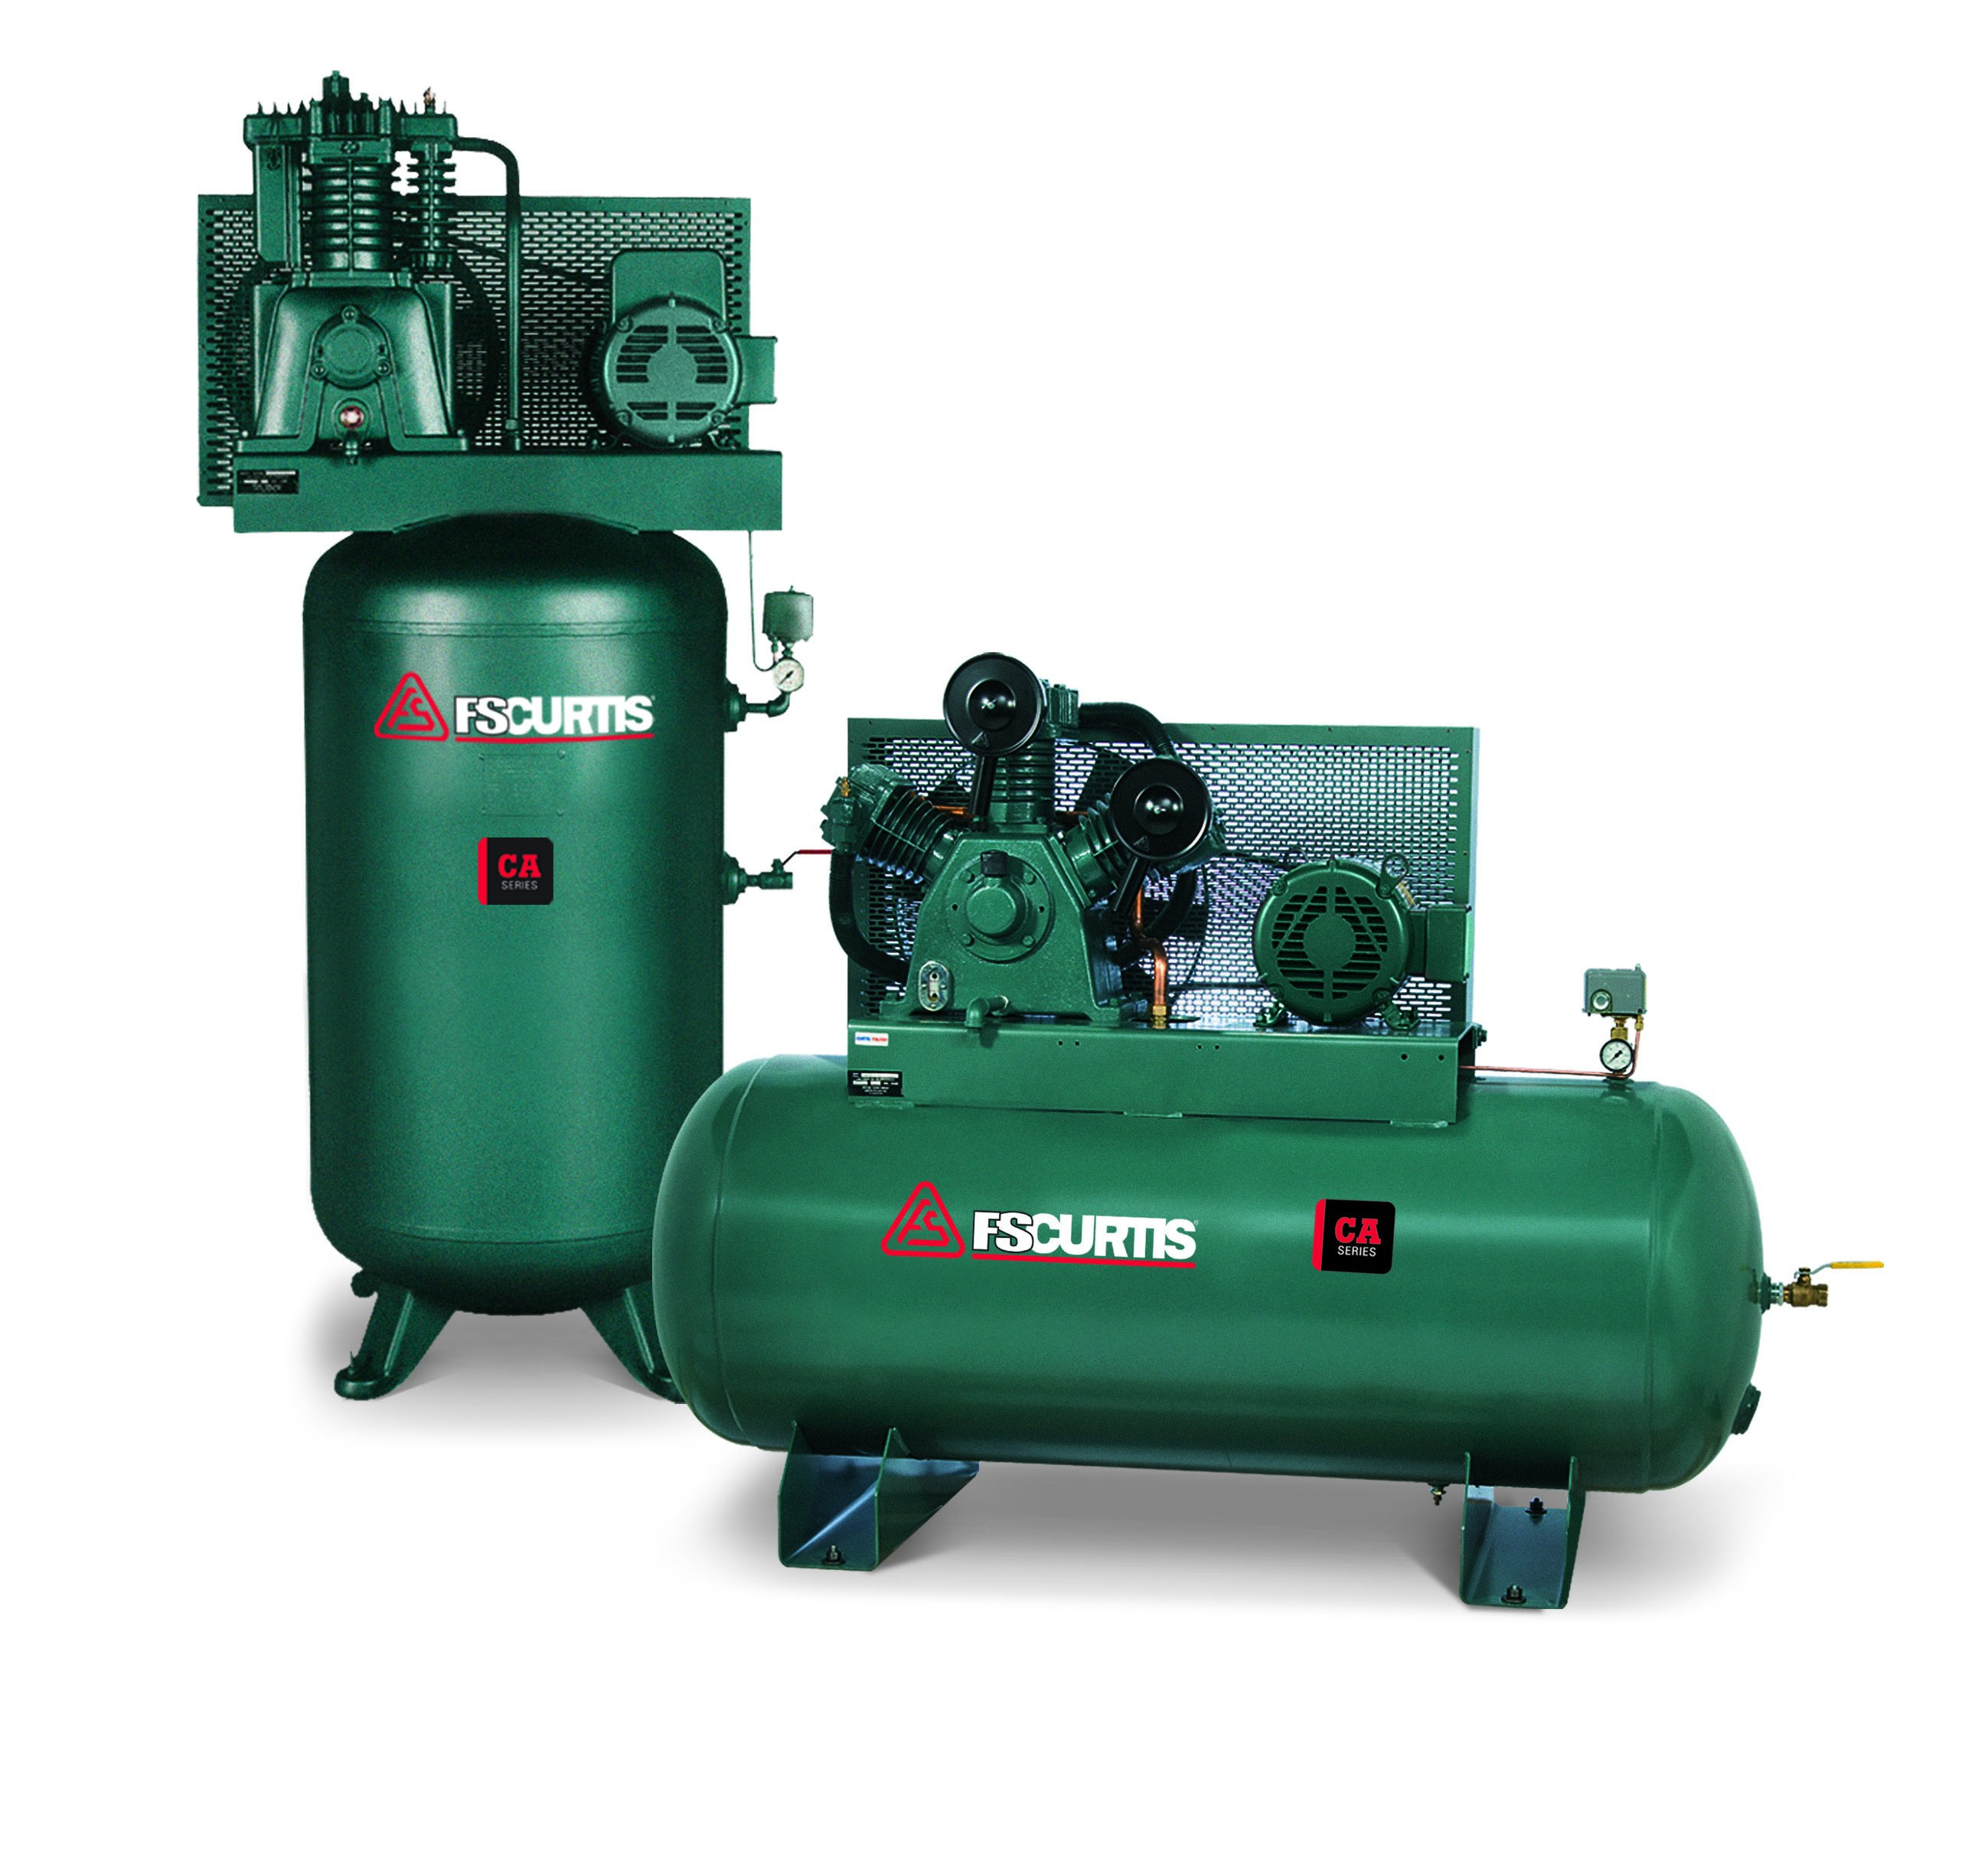 WHICH FS CURTIS RECIPROCATING AIR COMPRESSOR DO I NEED?